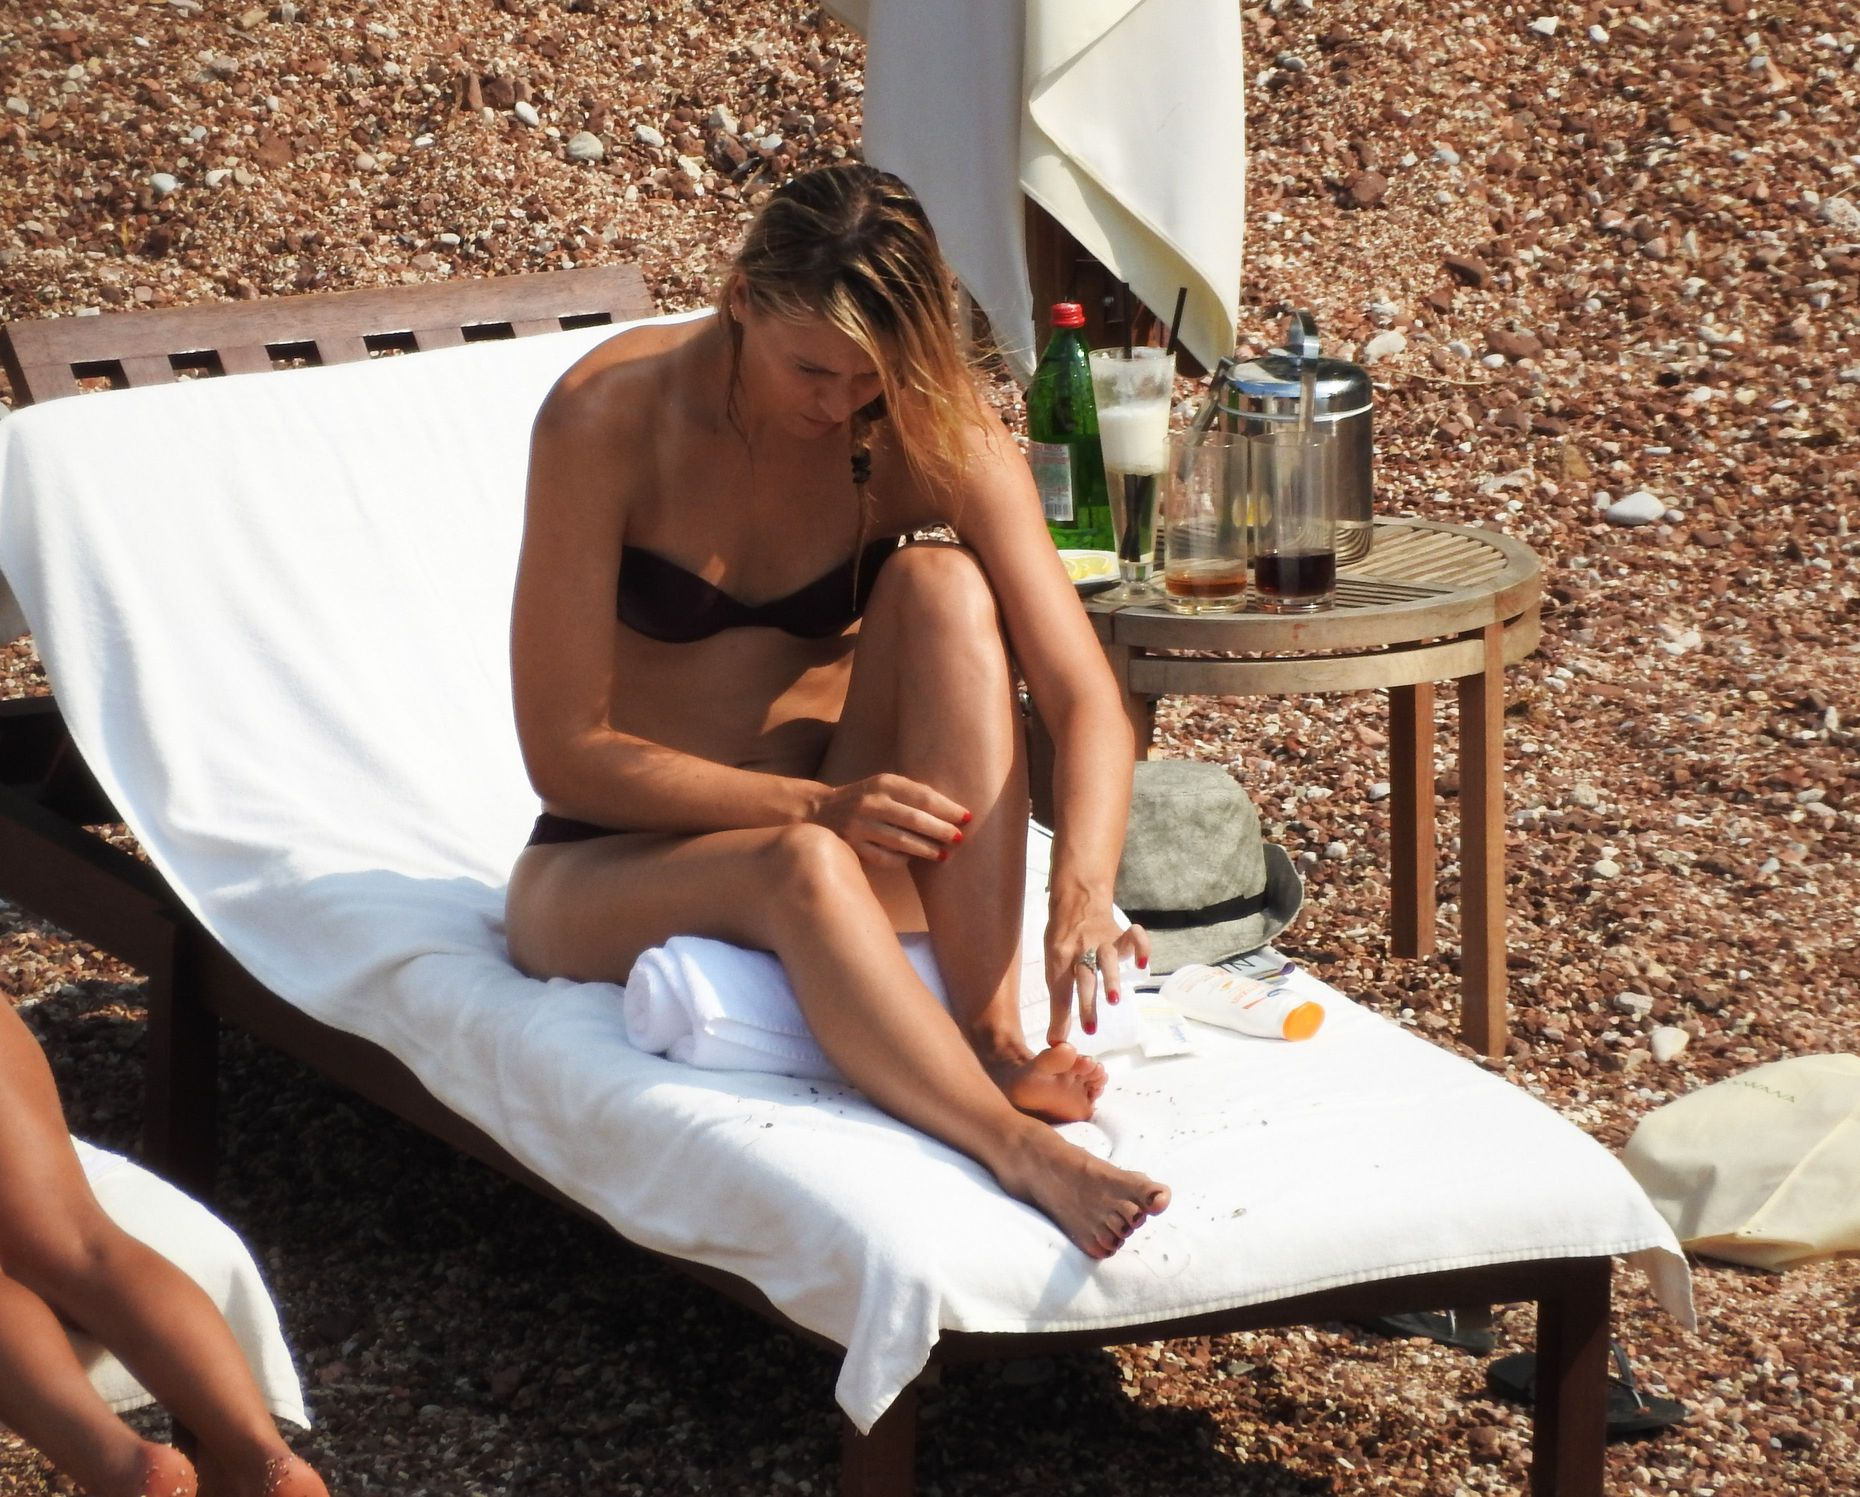 Opinion, Bikini maria paparazzi photo.jpg sharapova spy draw?